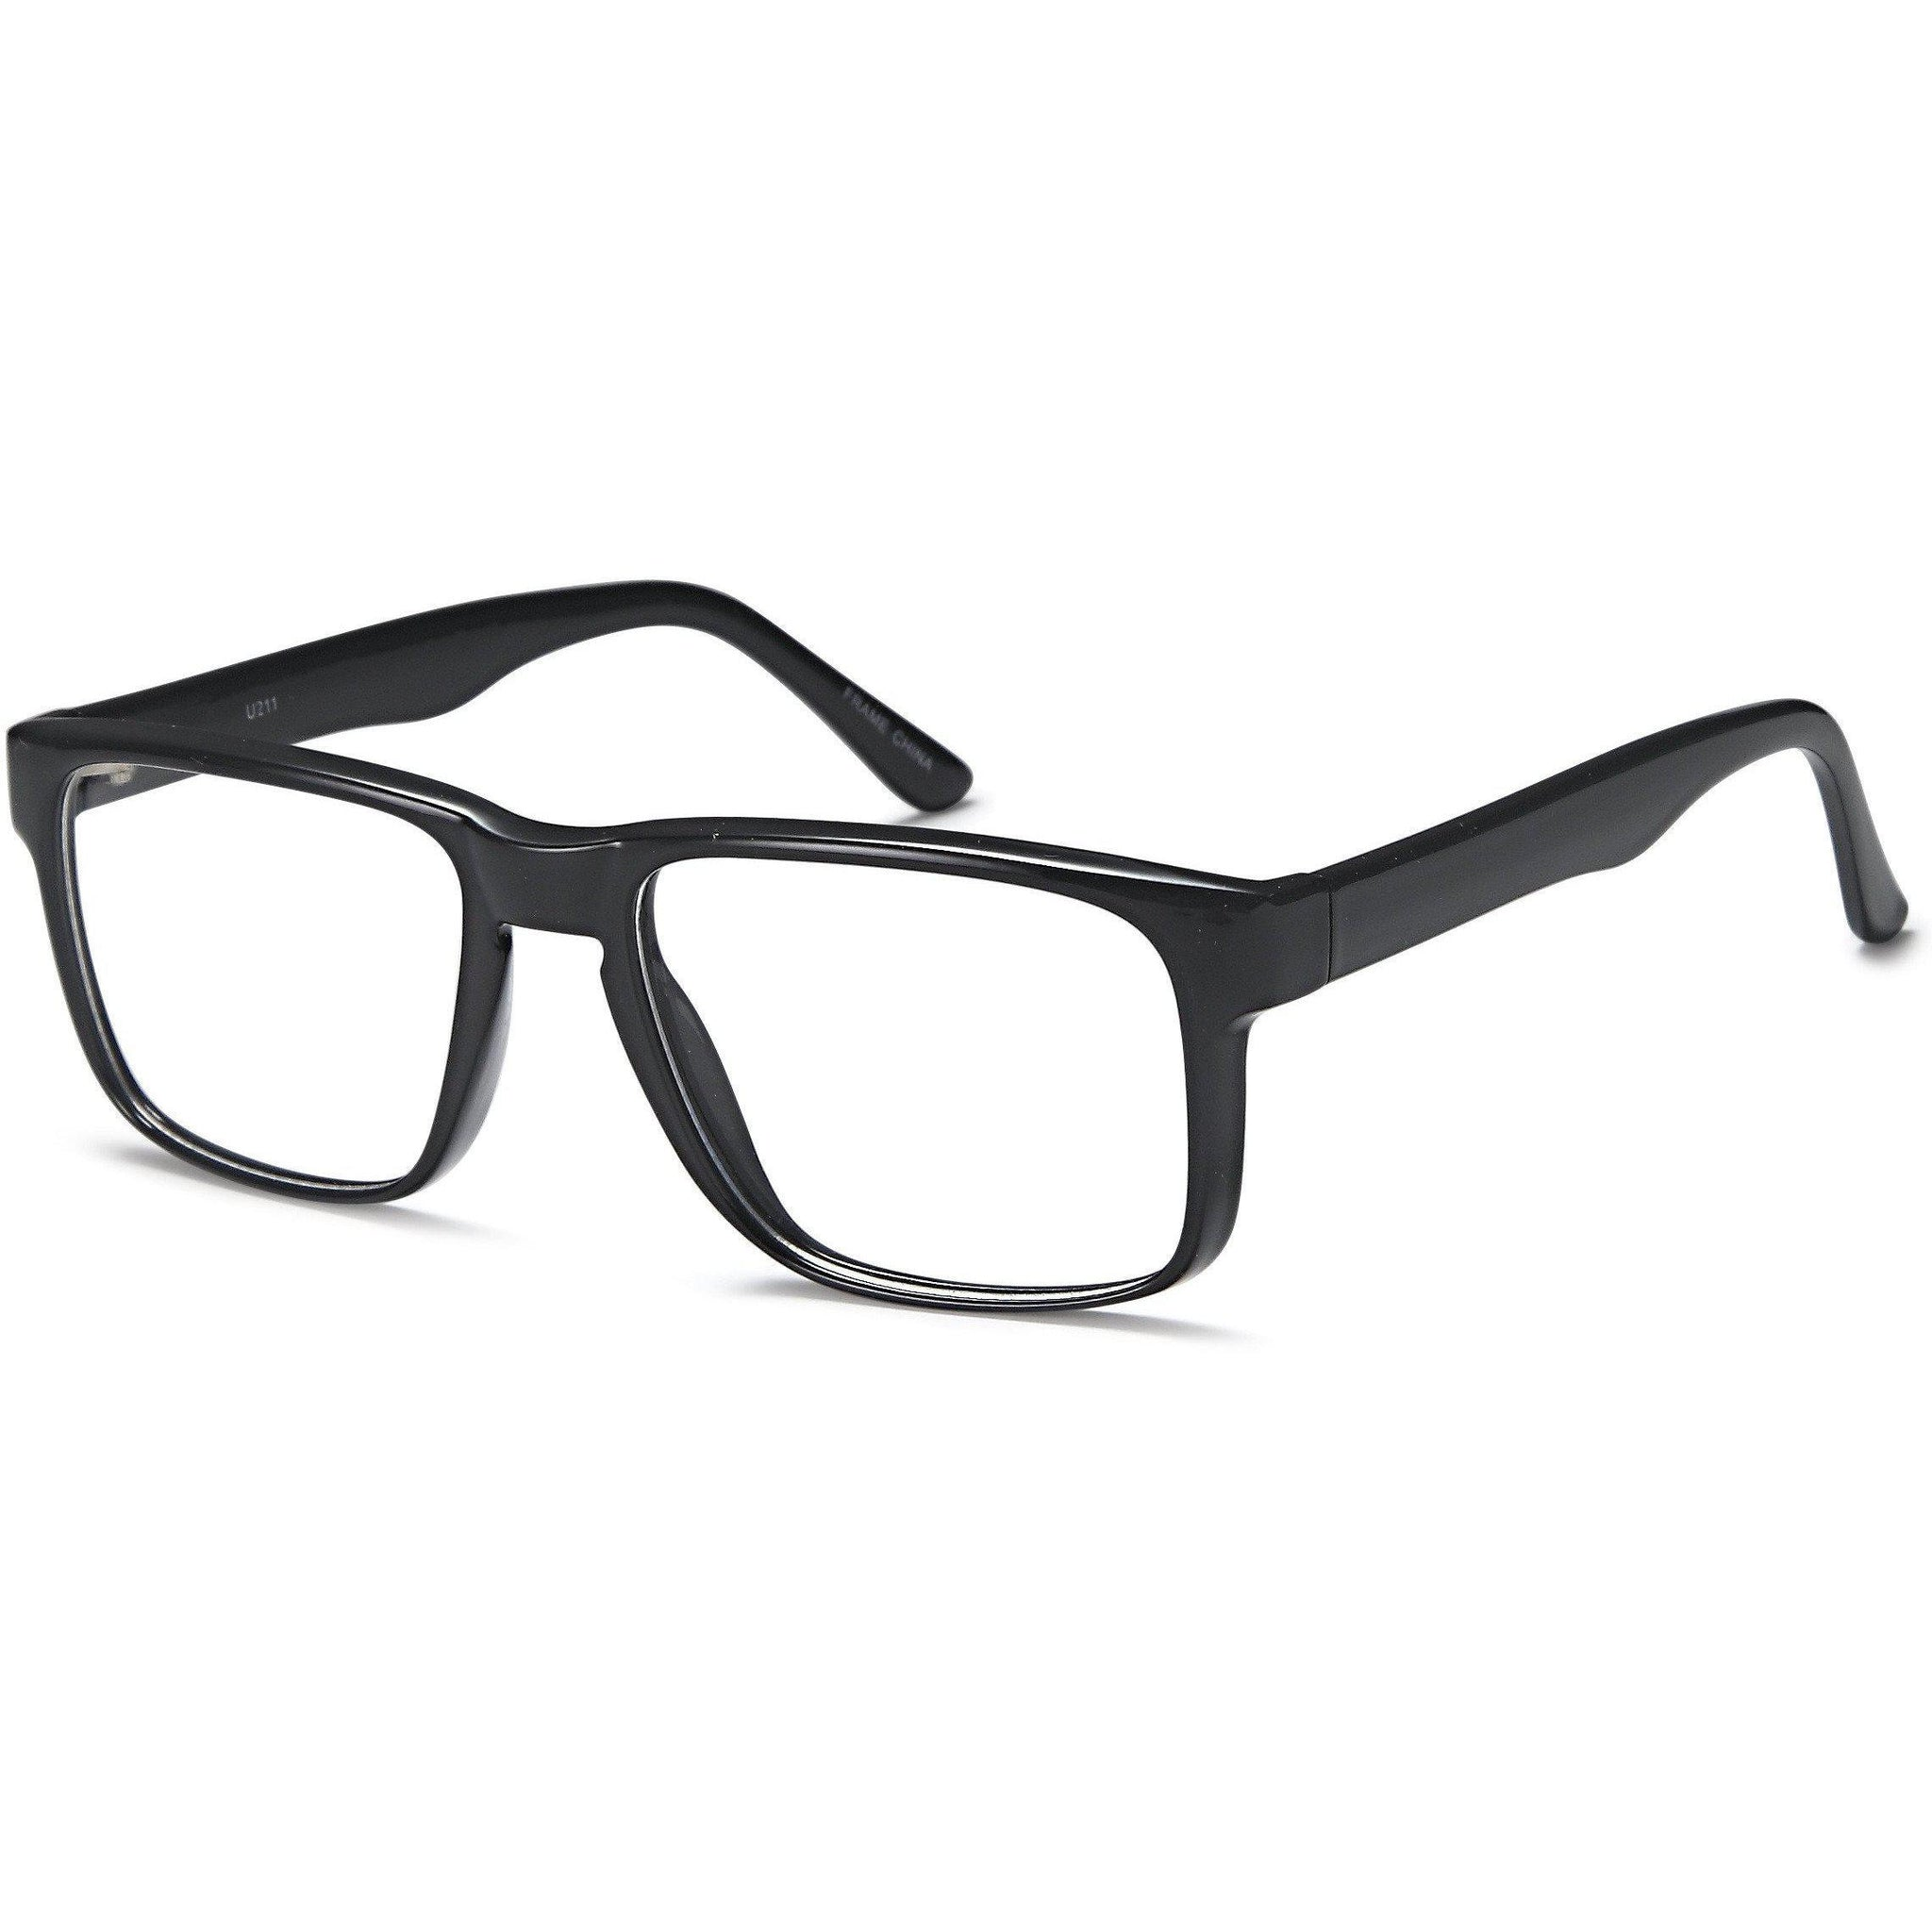 4U Prescription Glasses US TP5 Optical Eyeglasses Frame - timetoshade